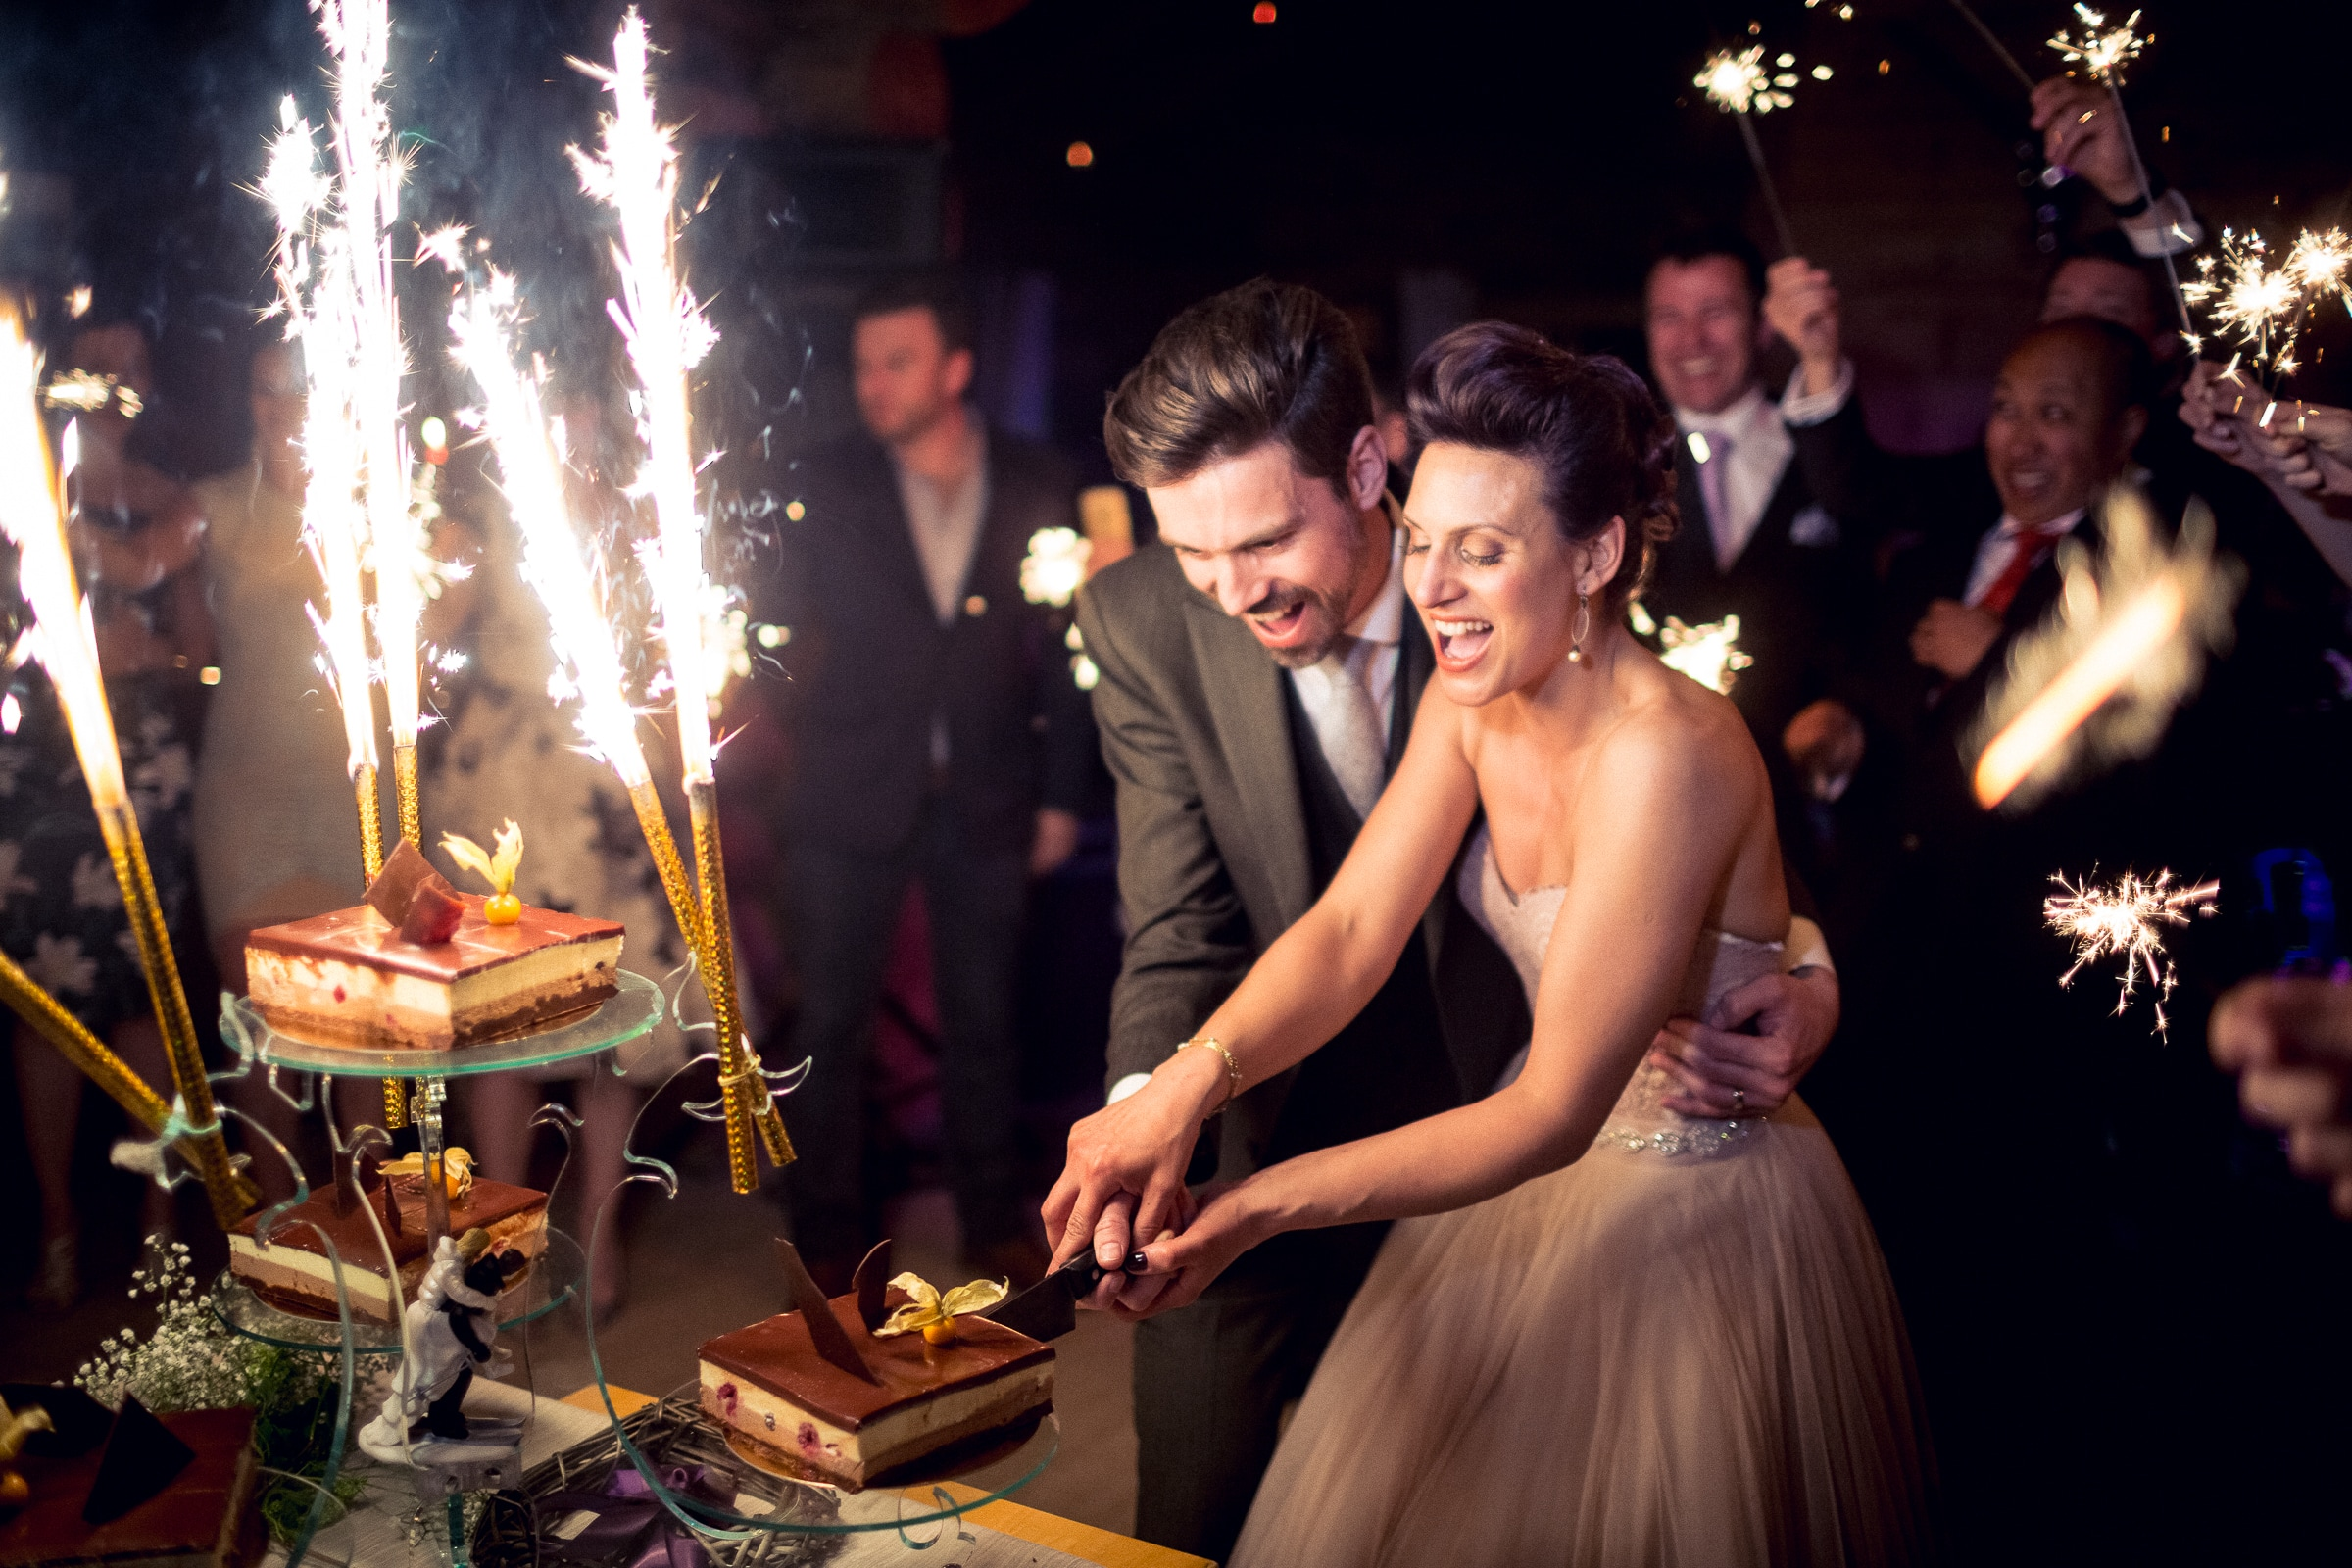 french-couple-cuts-cream-cakes-with-sparklers-sylvain-bouzat